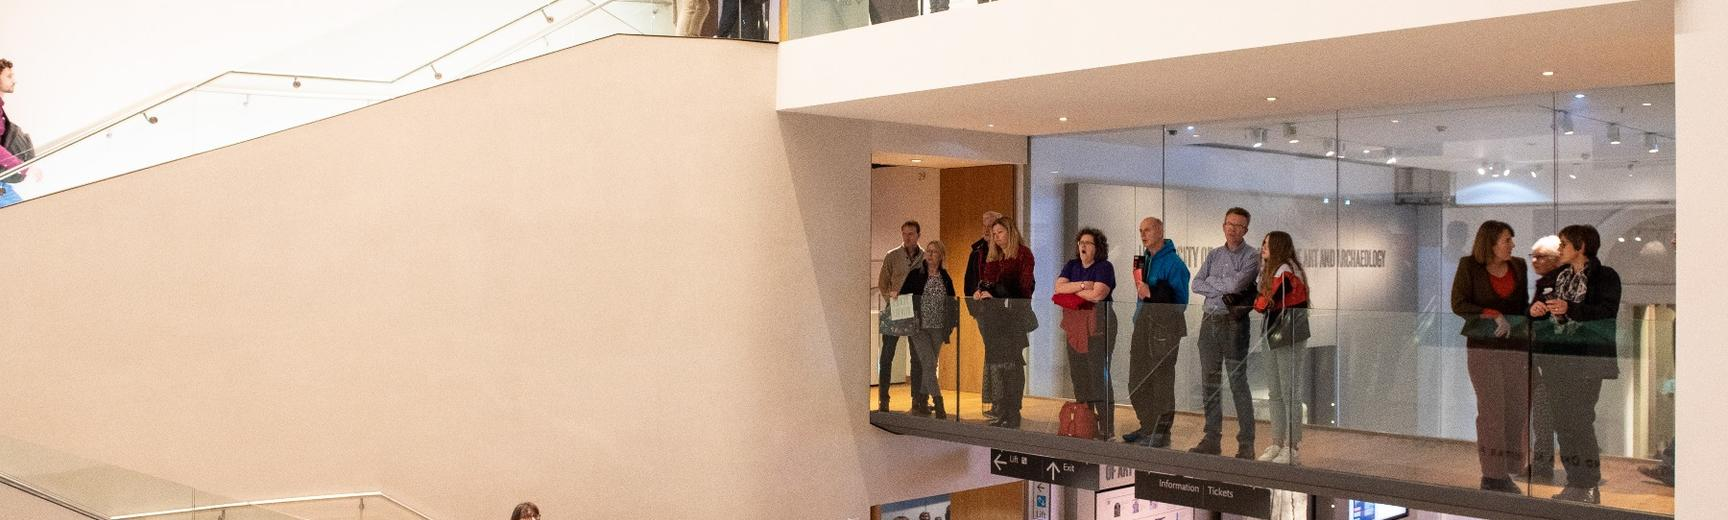 People standing on a balcony at the Ashmoleum Museum viewing an exhibition that is out of frame